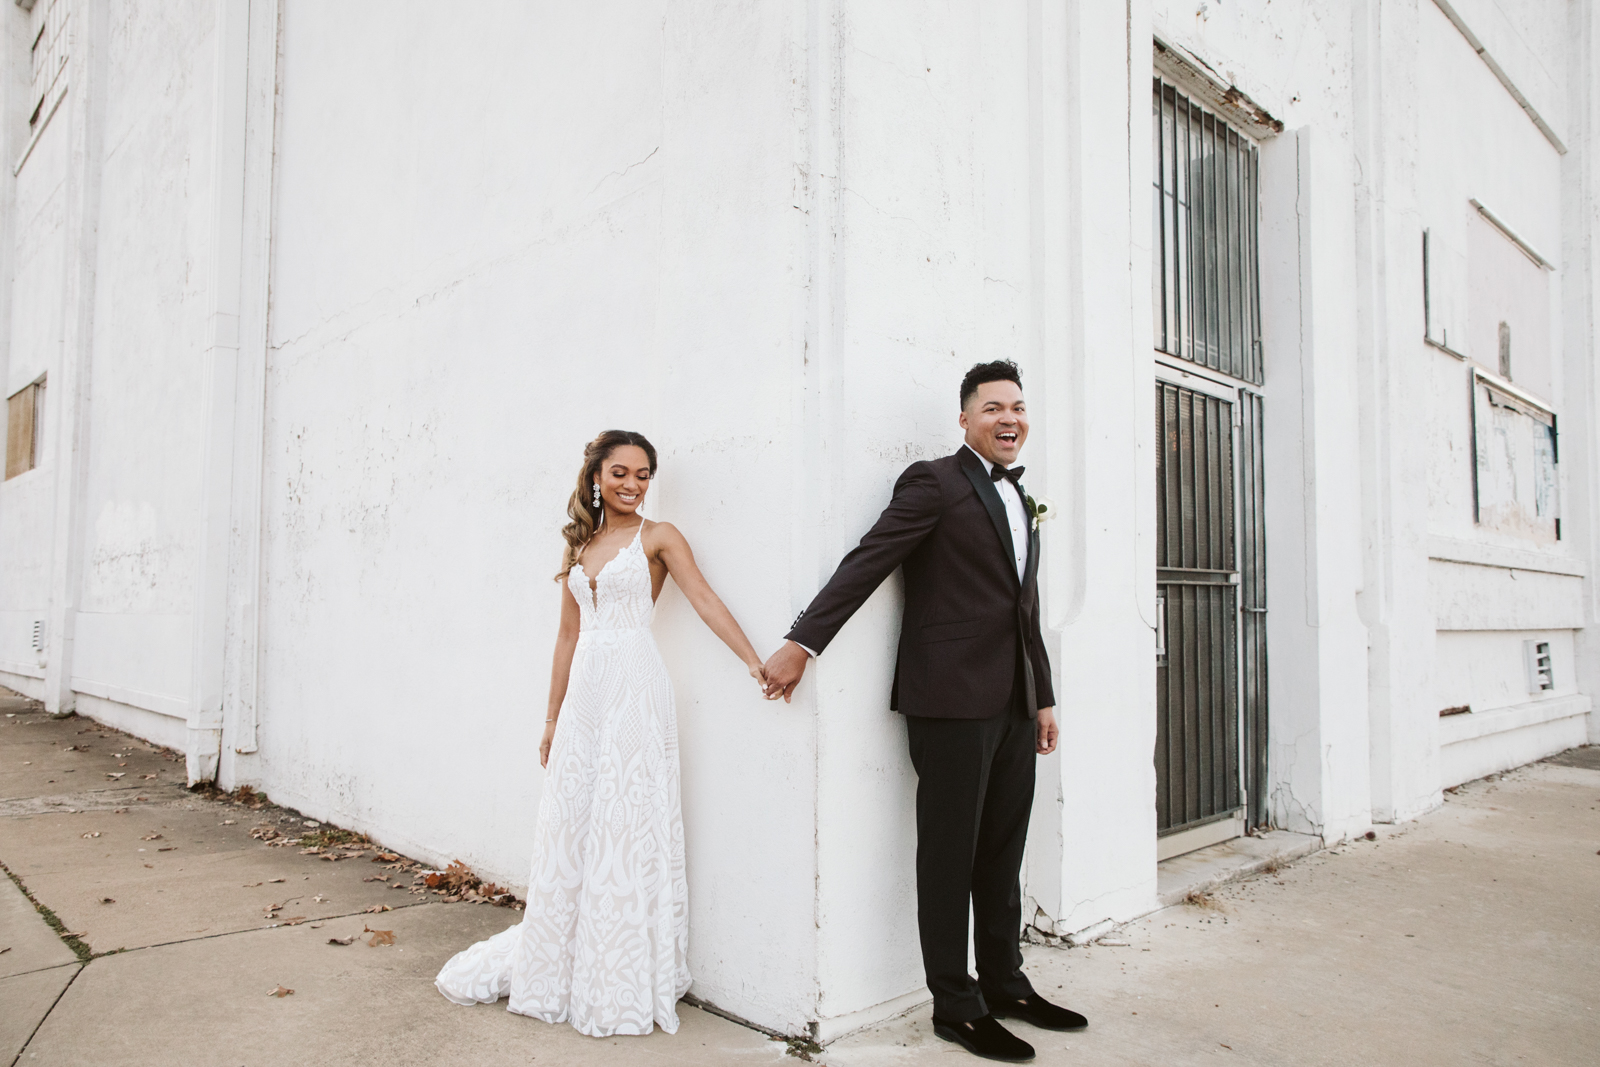 Wedding photographer Barcelona | Natalia Wisniewska Photography